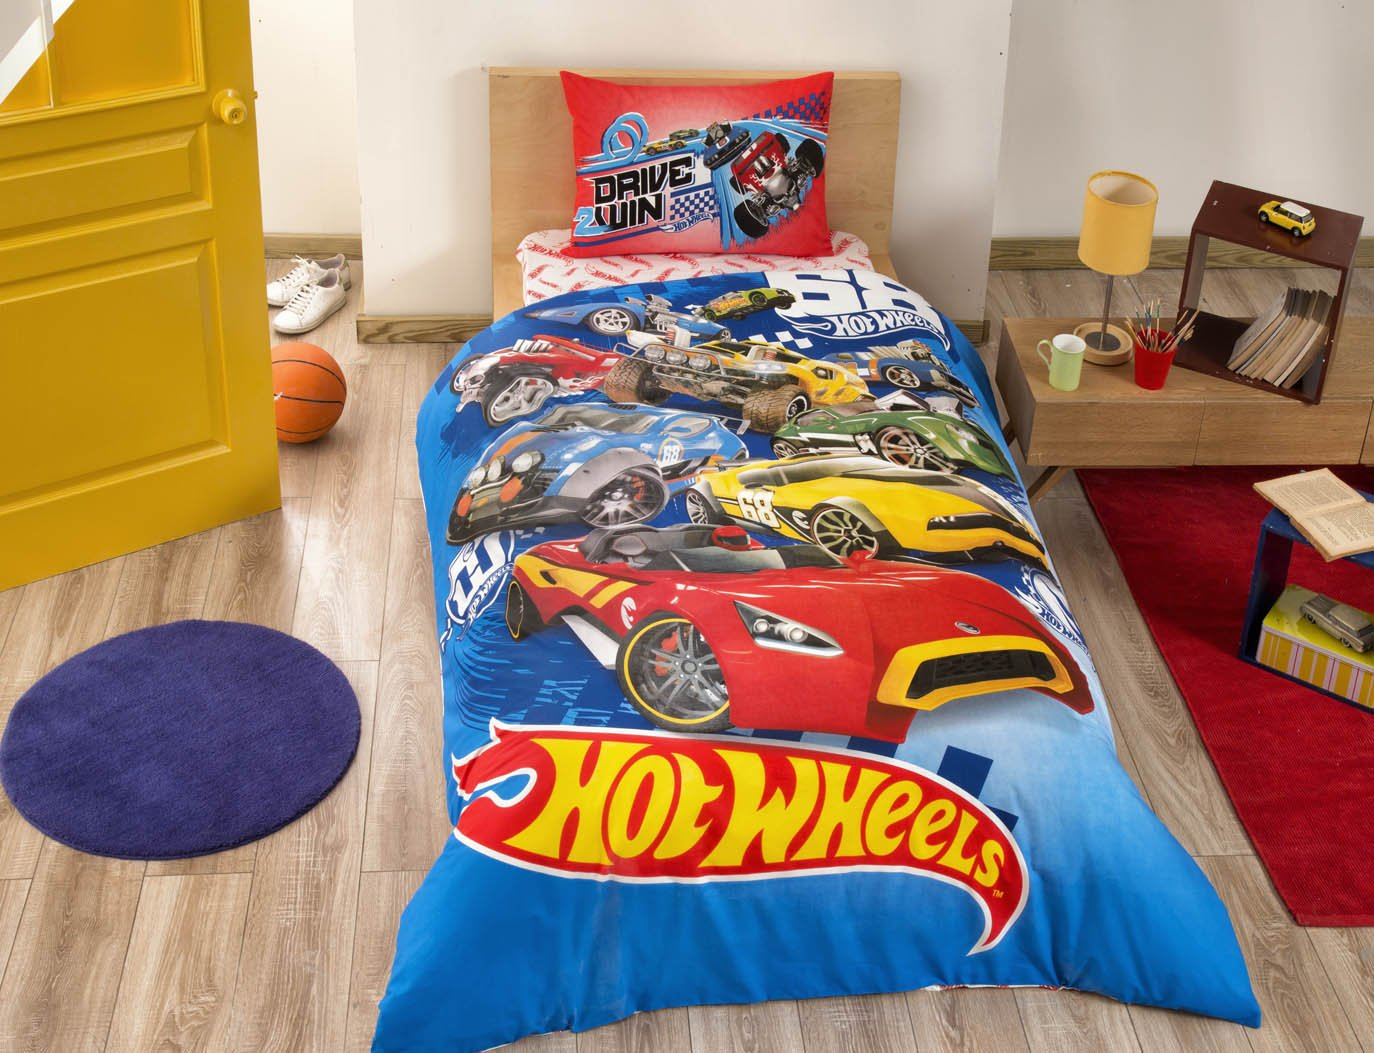 Kids Cars Bedding Duvet Cover Set New Licensed 100% Cotton / Cars Hot Wheels Twin Size Duvet Cover Set / Hot Wheels Bedding Set 3 PCS